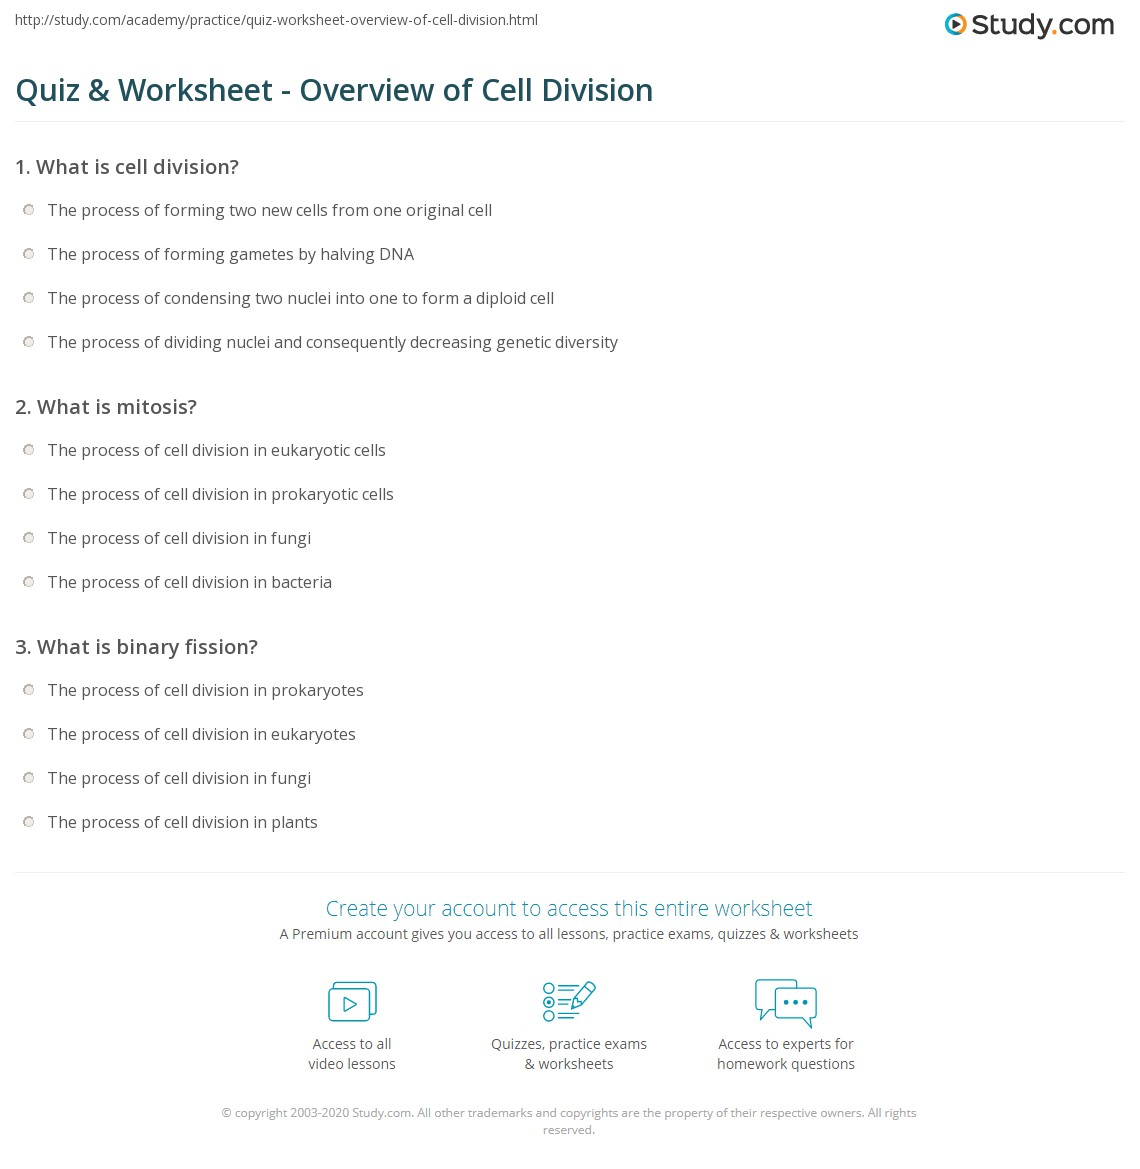 Quiz & Worksheet - Overview of Cell Division | Study.com